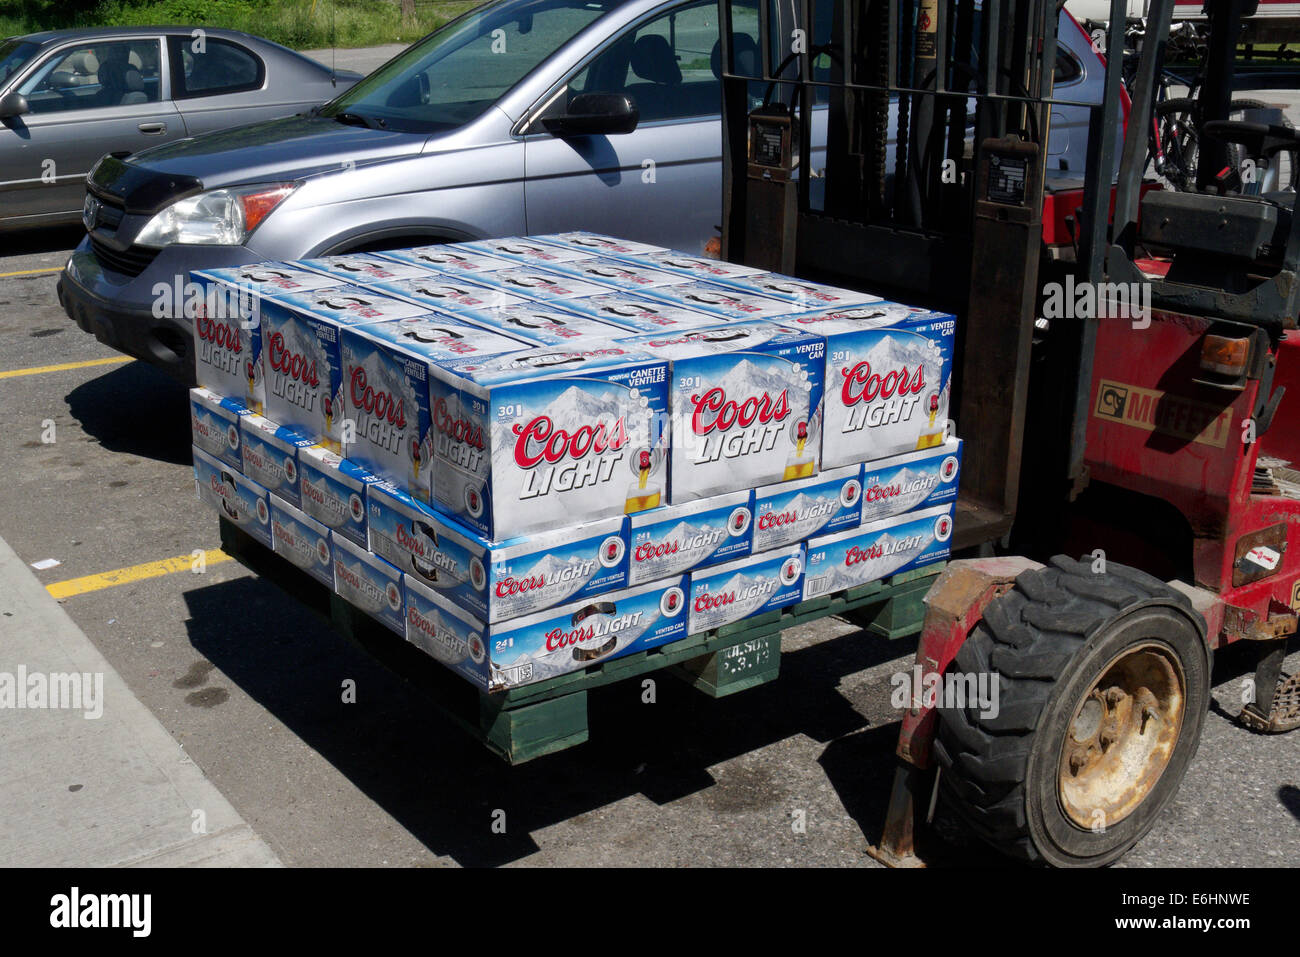 Boxes of coors light beer on a forklift stock photo 72919770 alamy boxes of coors light beer on a forklift aloadofball Images